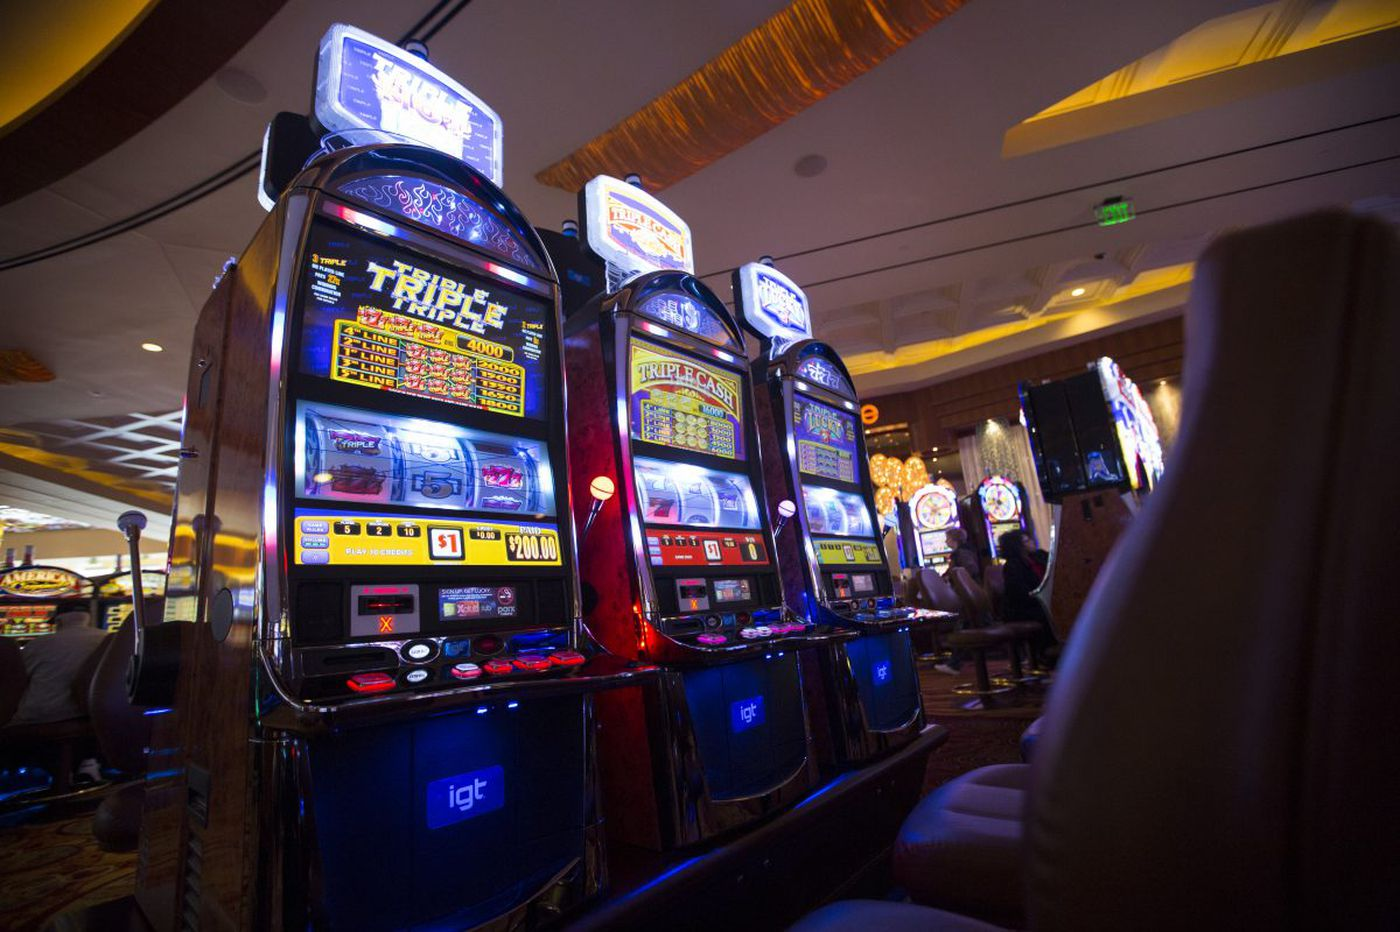 Pa.'s gambling expansion is high-stakes for towns such as Bensalem, host to Parx Casino